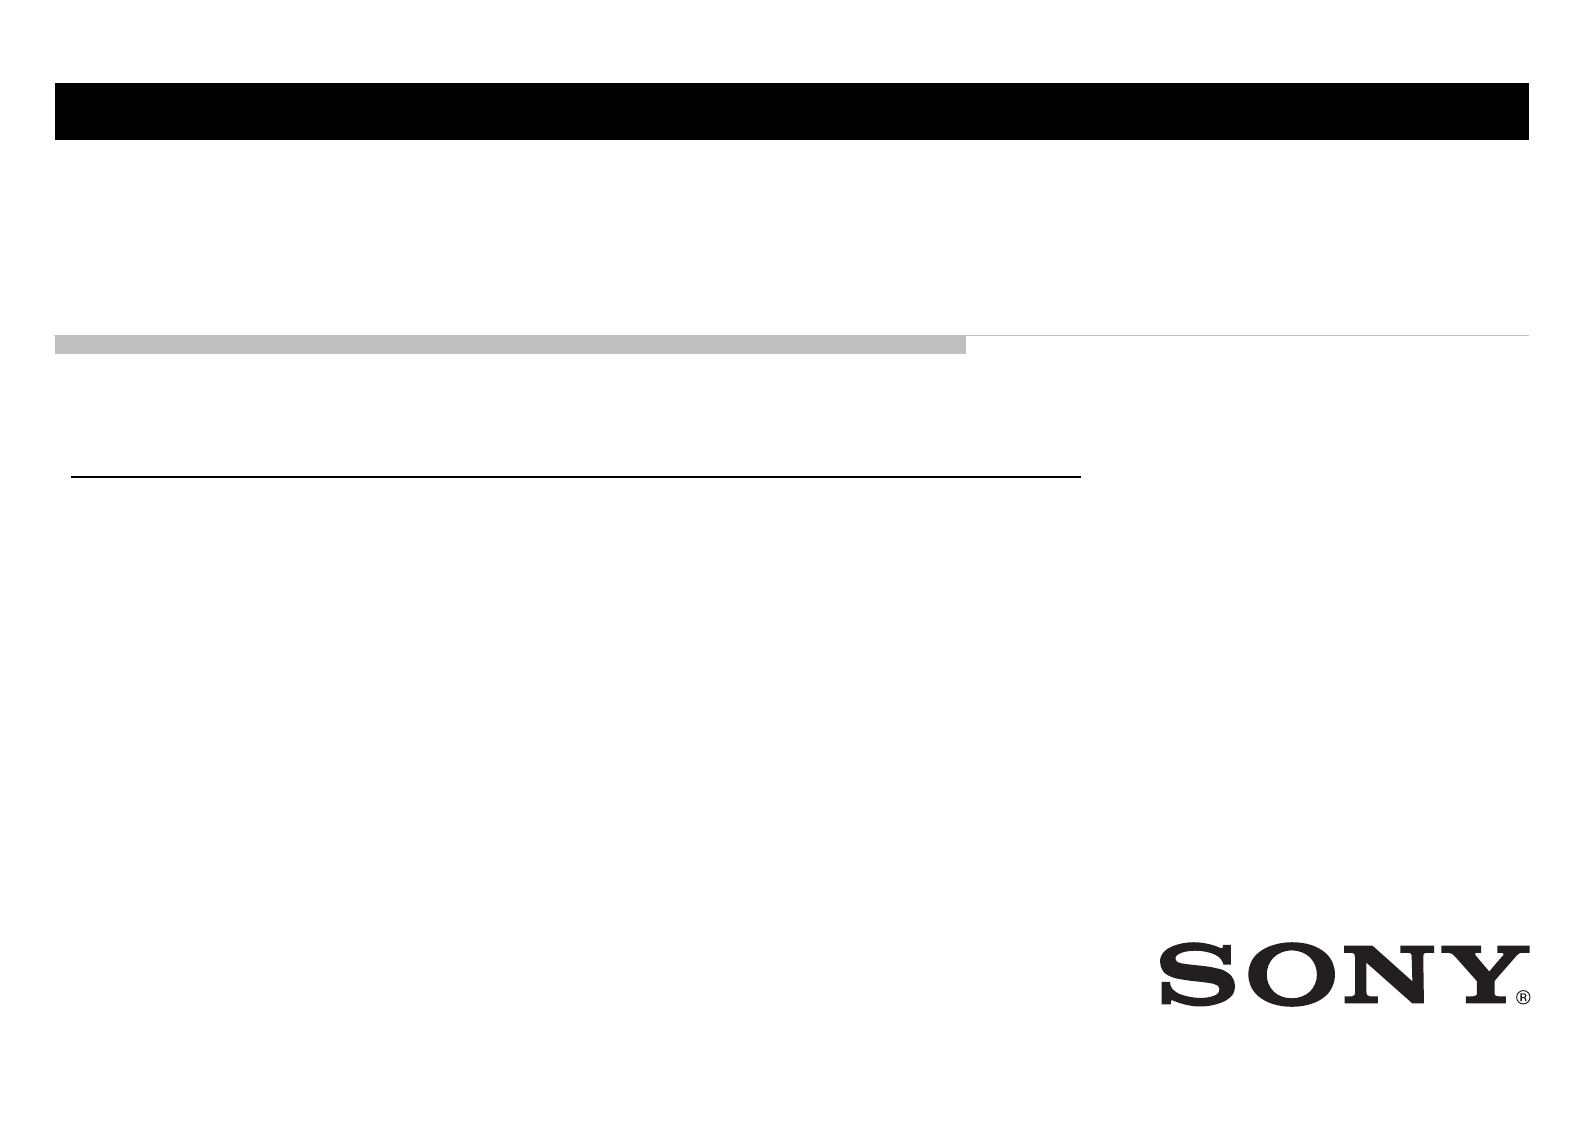 Manual Bravia Kdl 40nx503 Software For Sony 52lx900 Version Up Procedure 190